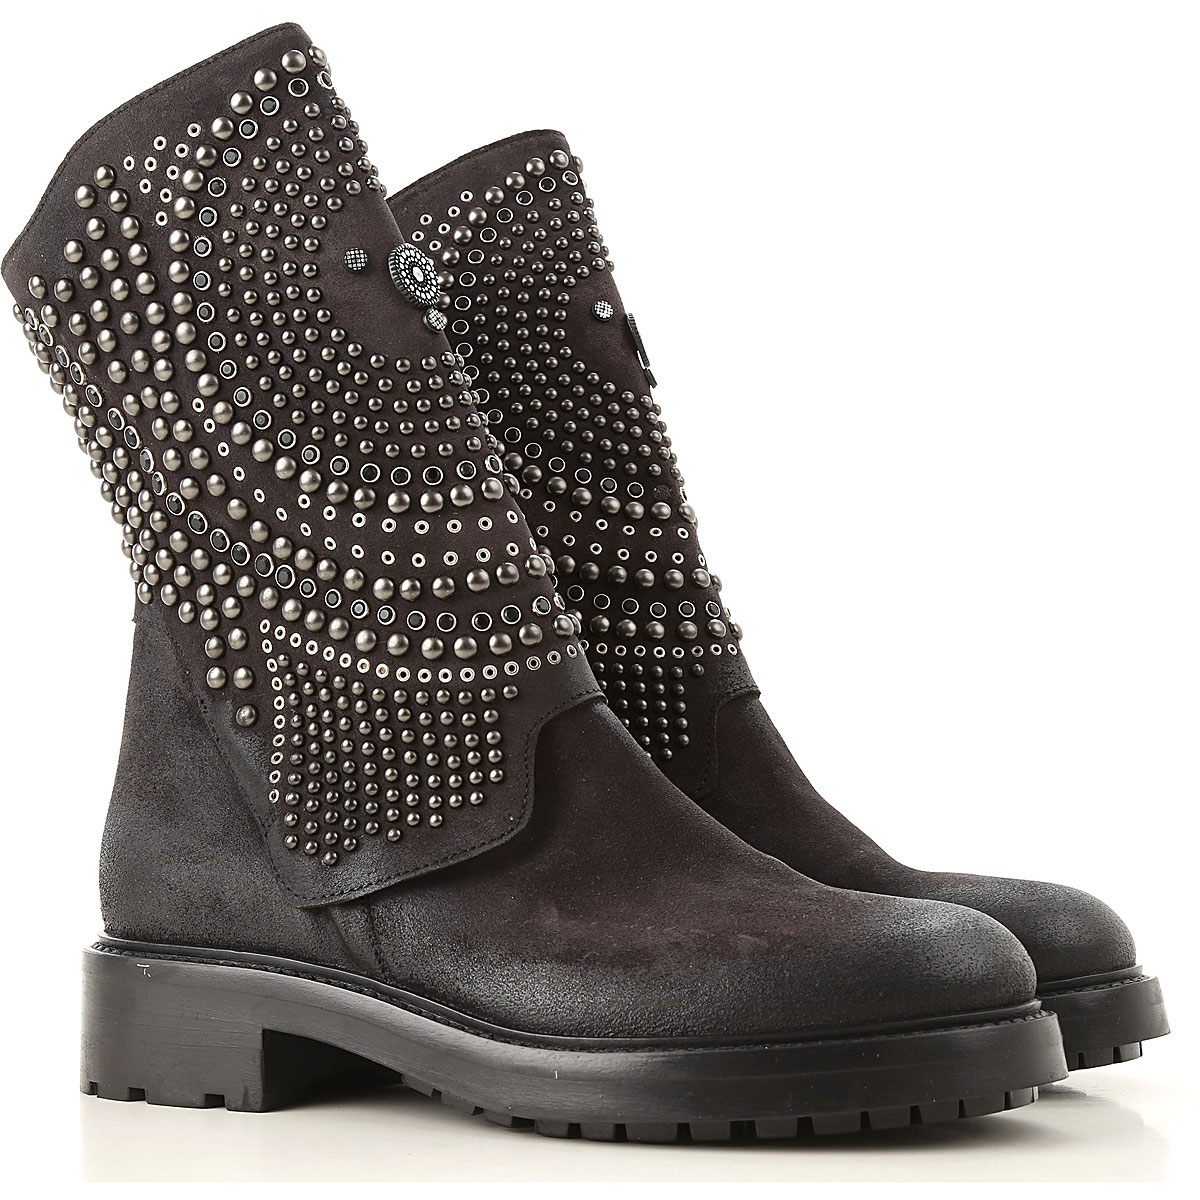 Image of Elena Iachi Boots for Women, Booties, Dark Anthracite, Suede leather, 2017, 6 7 8 9